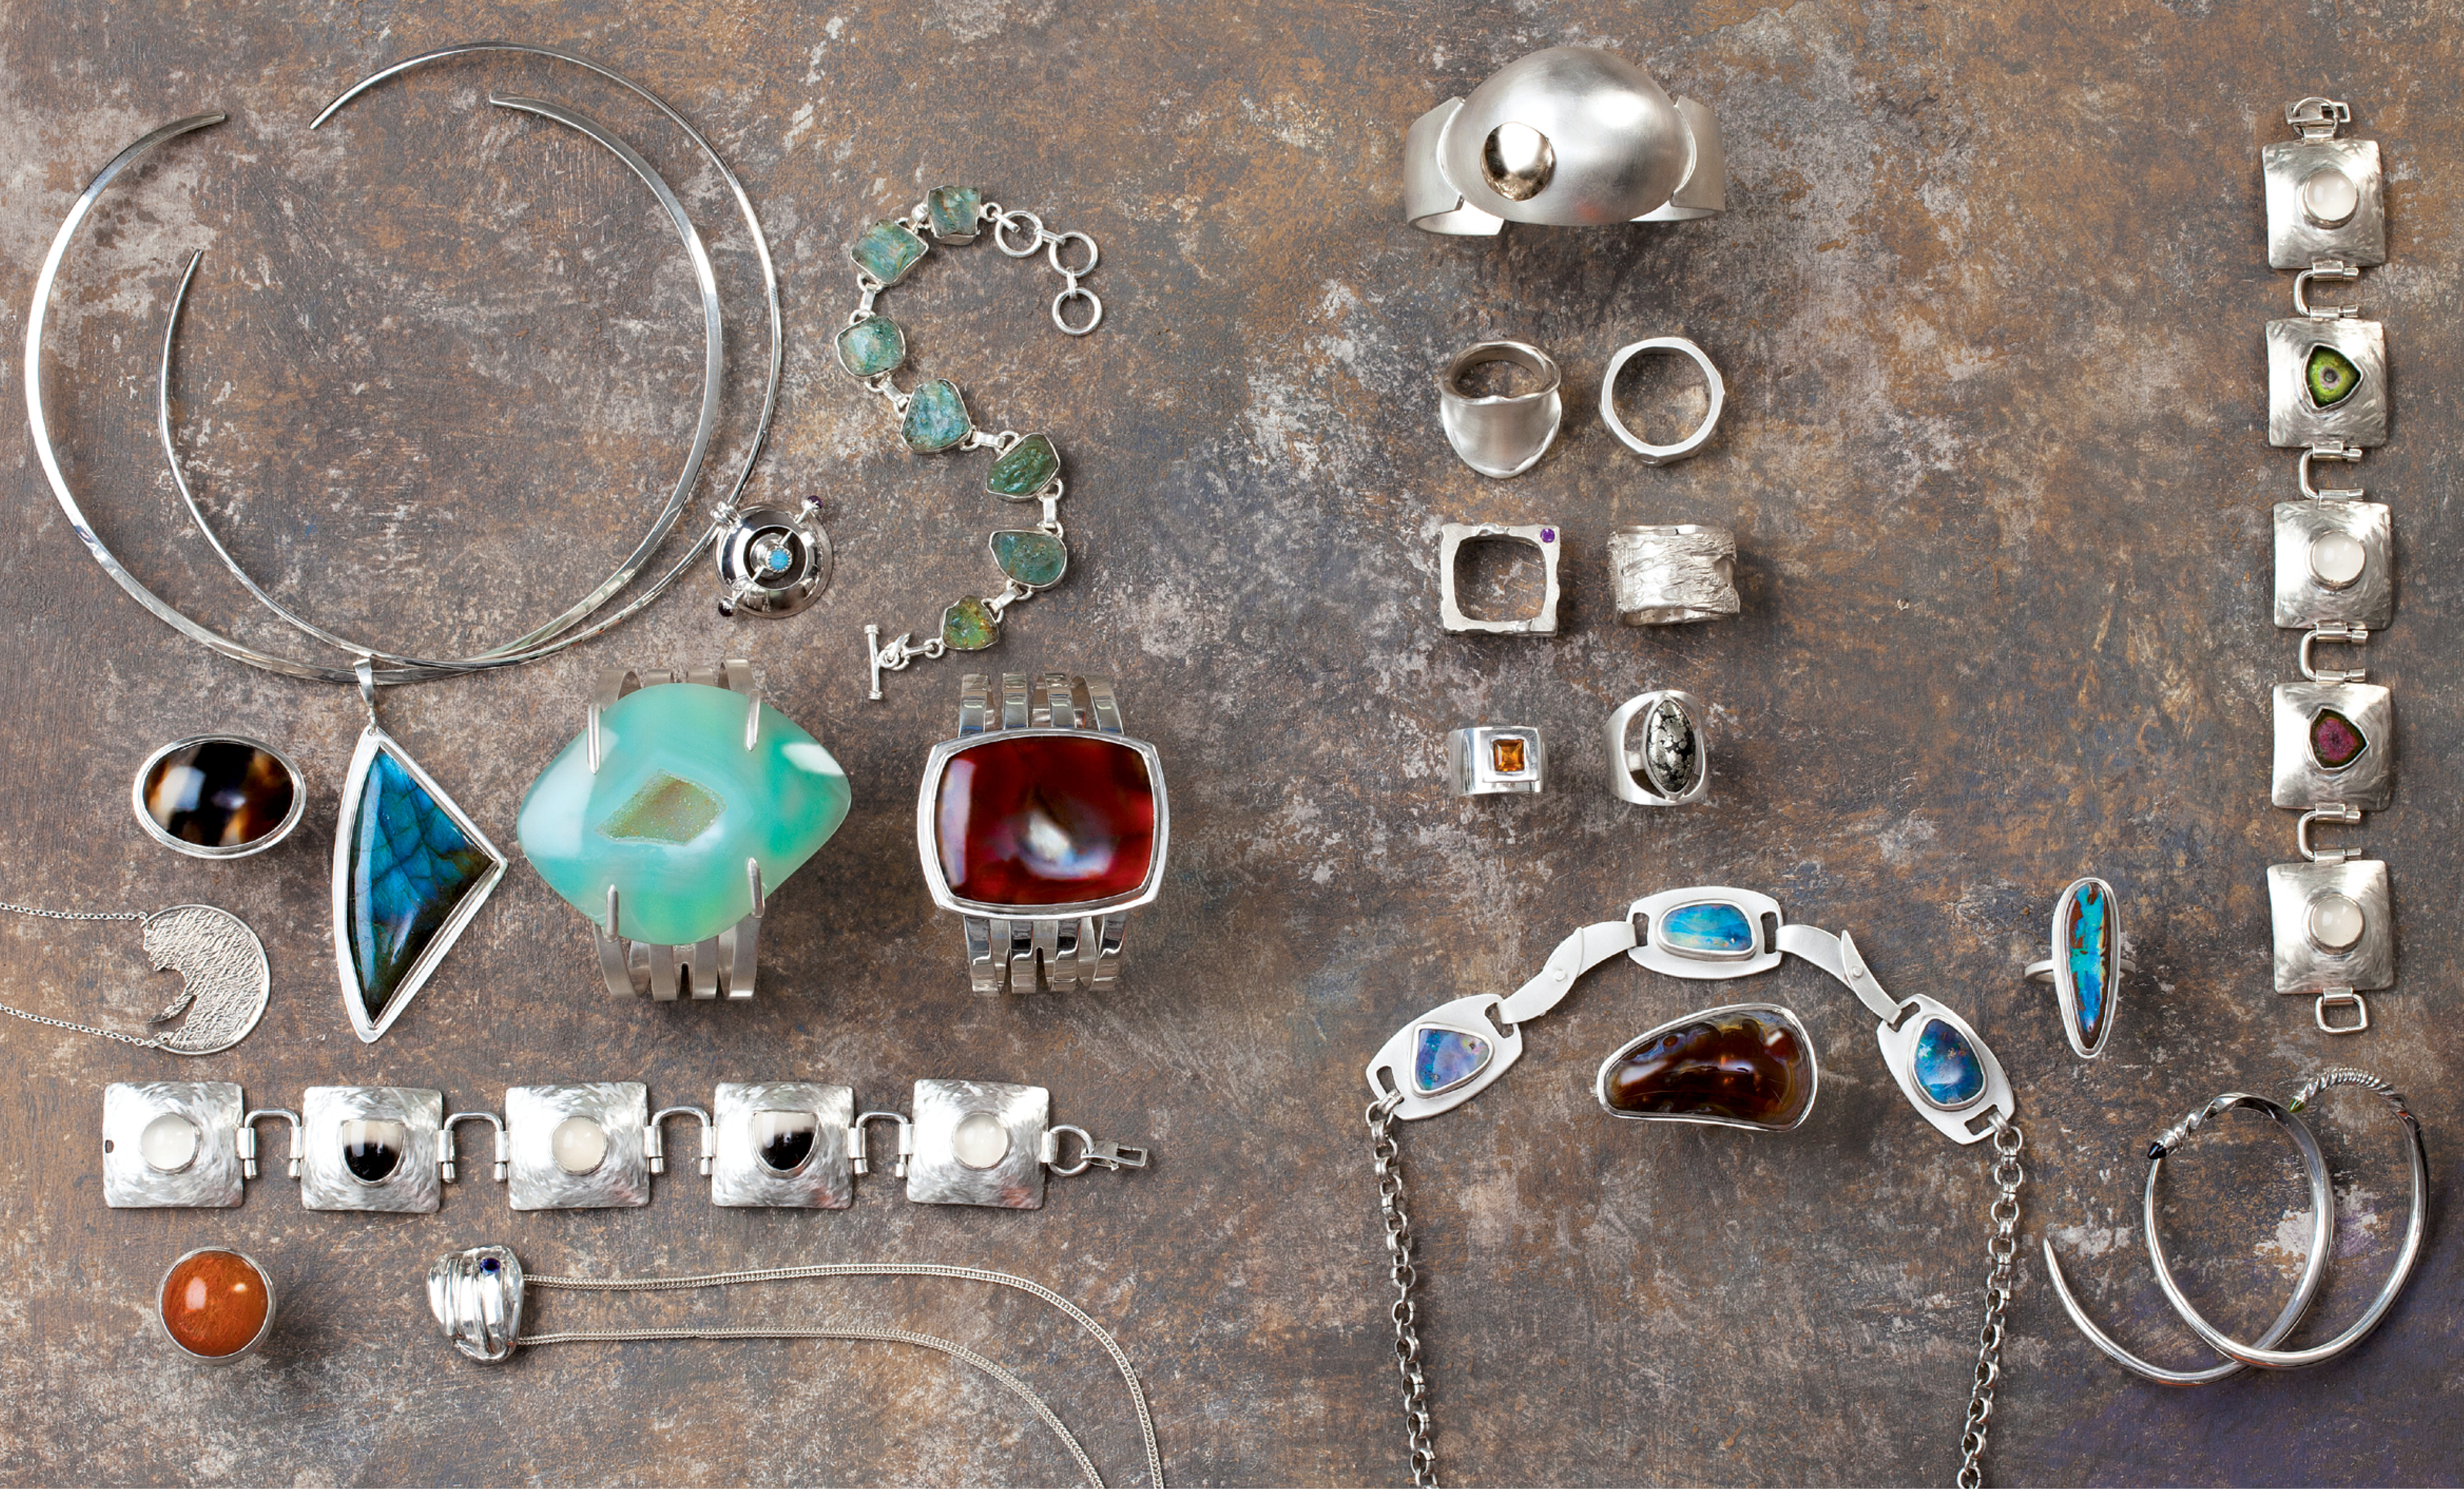 """Angela Hall, Angela Hall Designs: Intriguing gemstones often drive the clean-lined designs of the College of Charleston grad, who continued her arts education at Savannah College of Art and Design, The Museum School of Fine Arts in Boston, and the Haystack School in Maine and launched her eponymous custom jewelry line in Charleston in 2000. Whether starting with Australian boulder opal, Brazilian piranha agate, sapphire, or watermelon tourmaline, she incorporates techniques in fine metals—forming, soldering, filing, piercing, reticulation, and casting—to create each piece. """"My work embodies simplicity and a respect for the fundamental principles of design,"""" she explains. See her jewelry at Charleston Farmers Market, as well as at angelahall.net and angelahall1.etsy.com."""